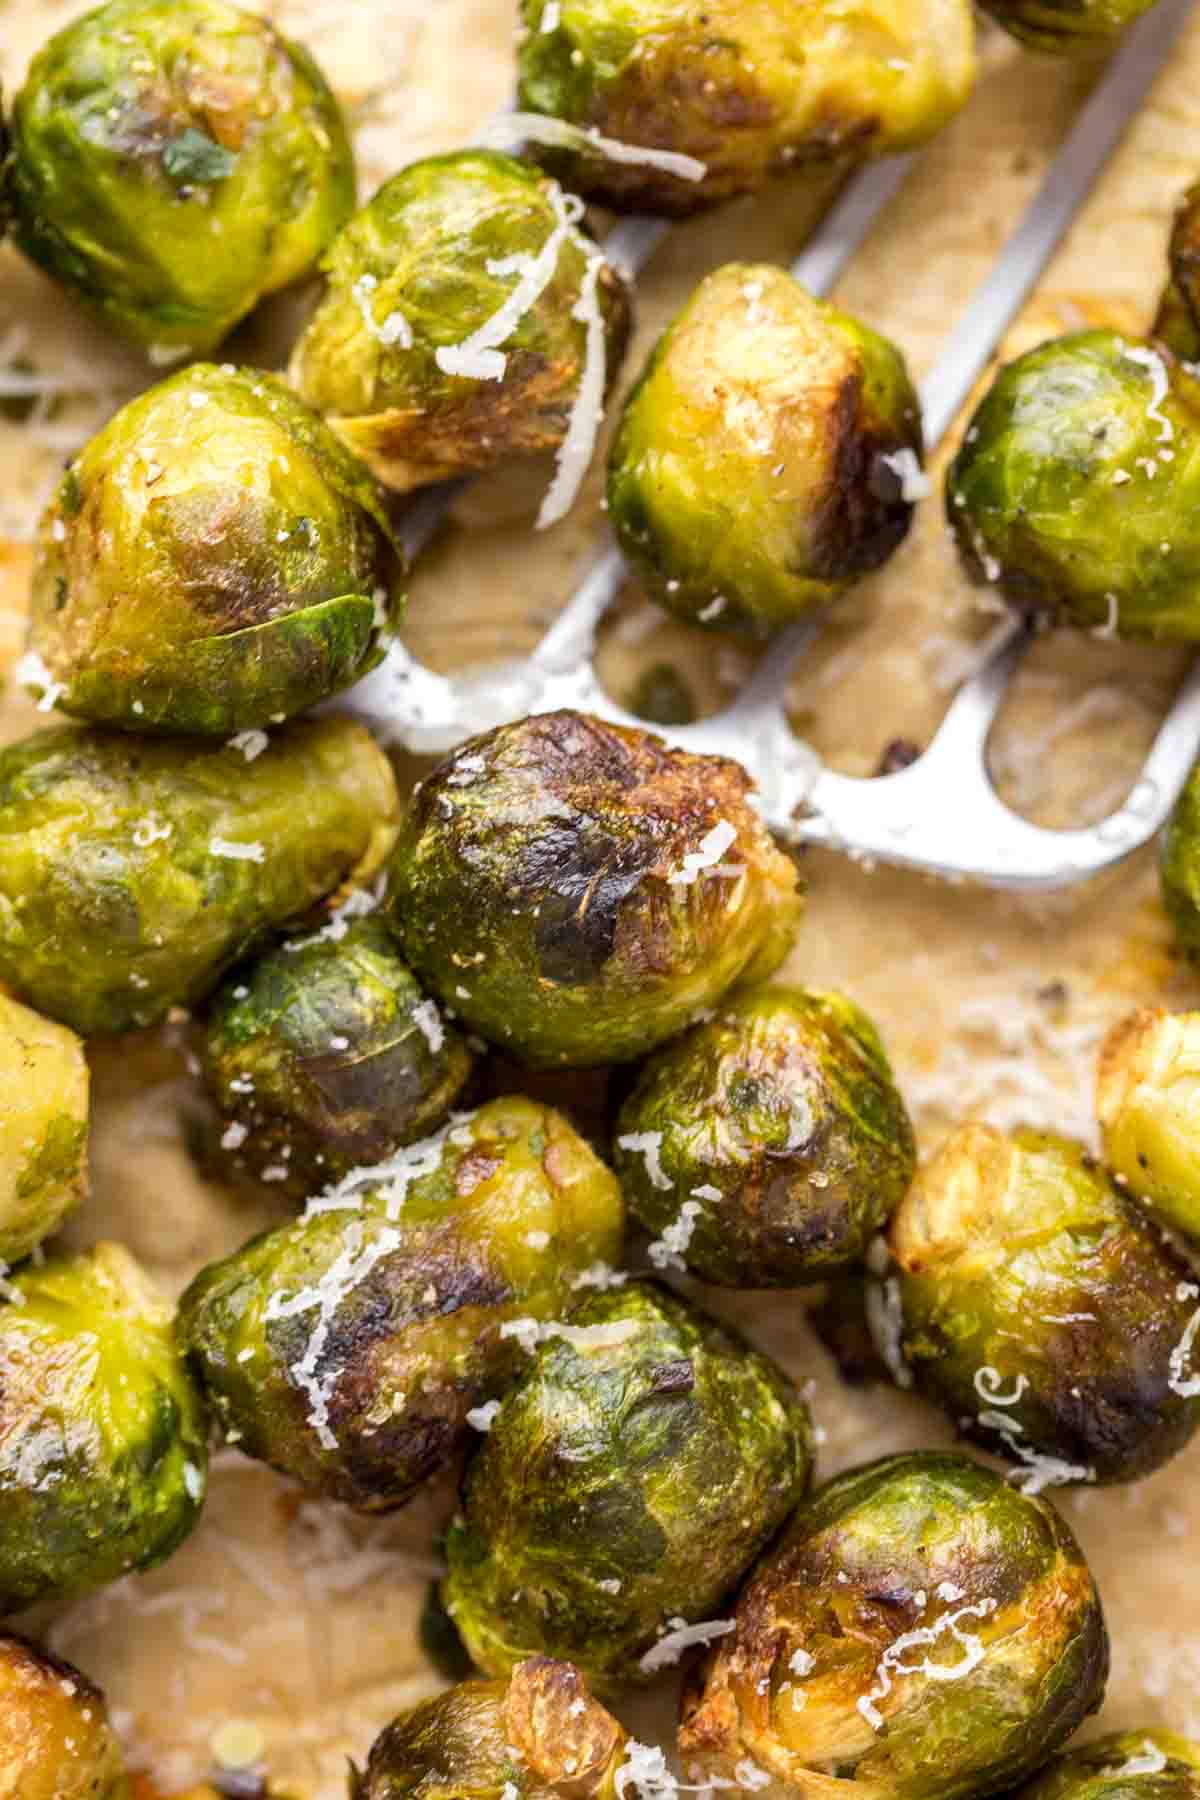 Close up of roasted brussels sprouts with parmesan flakes